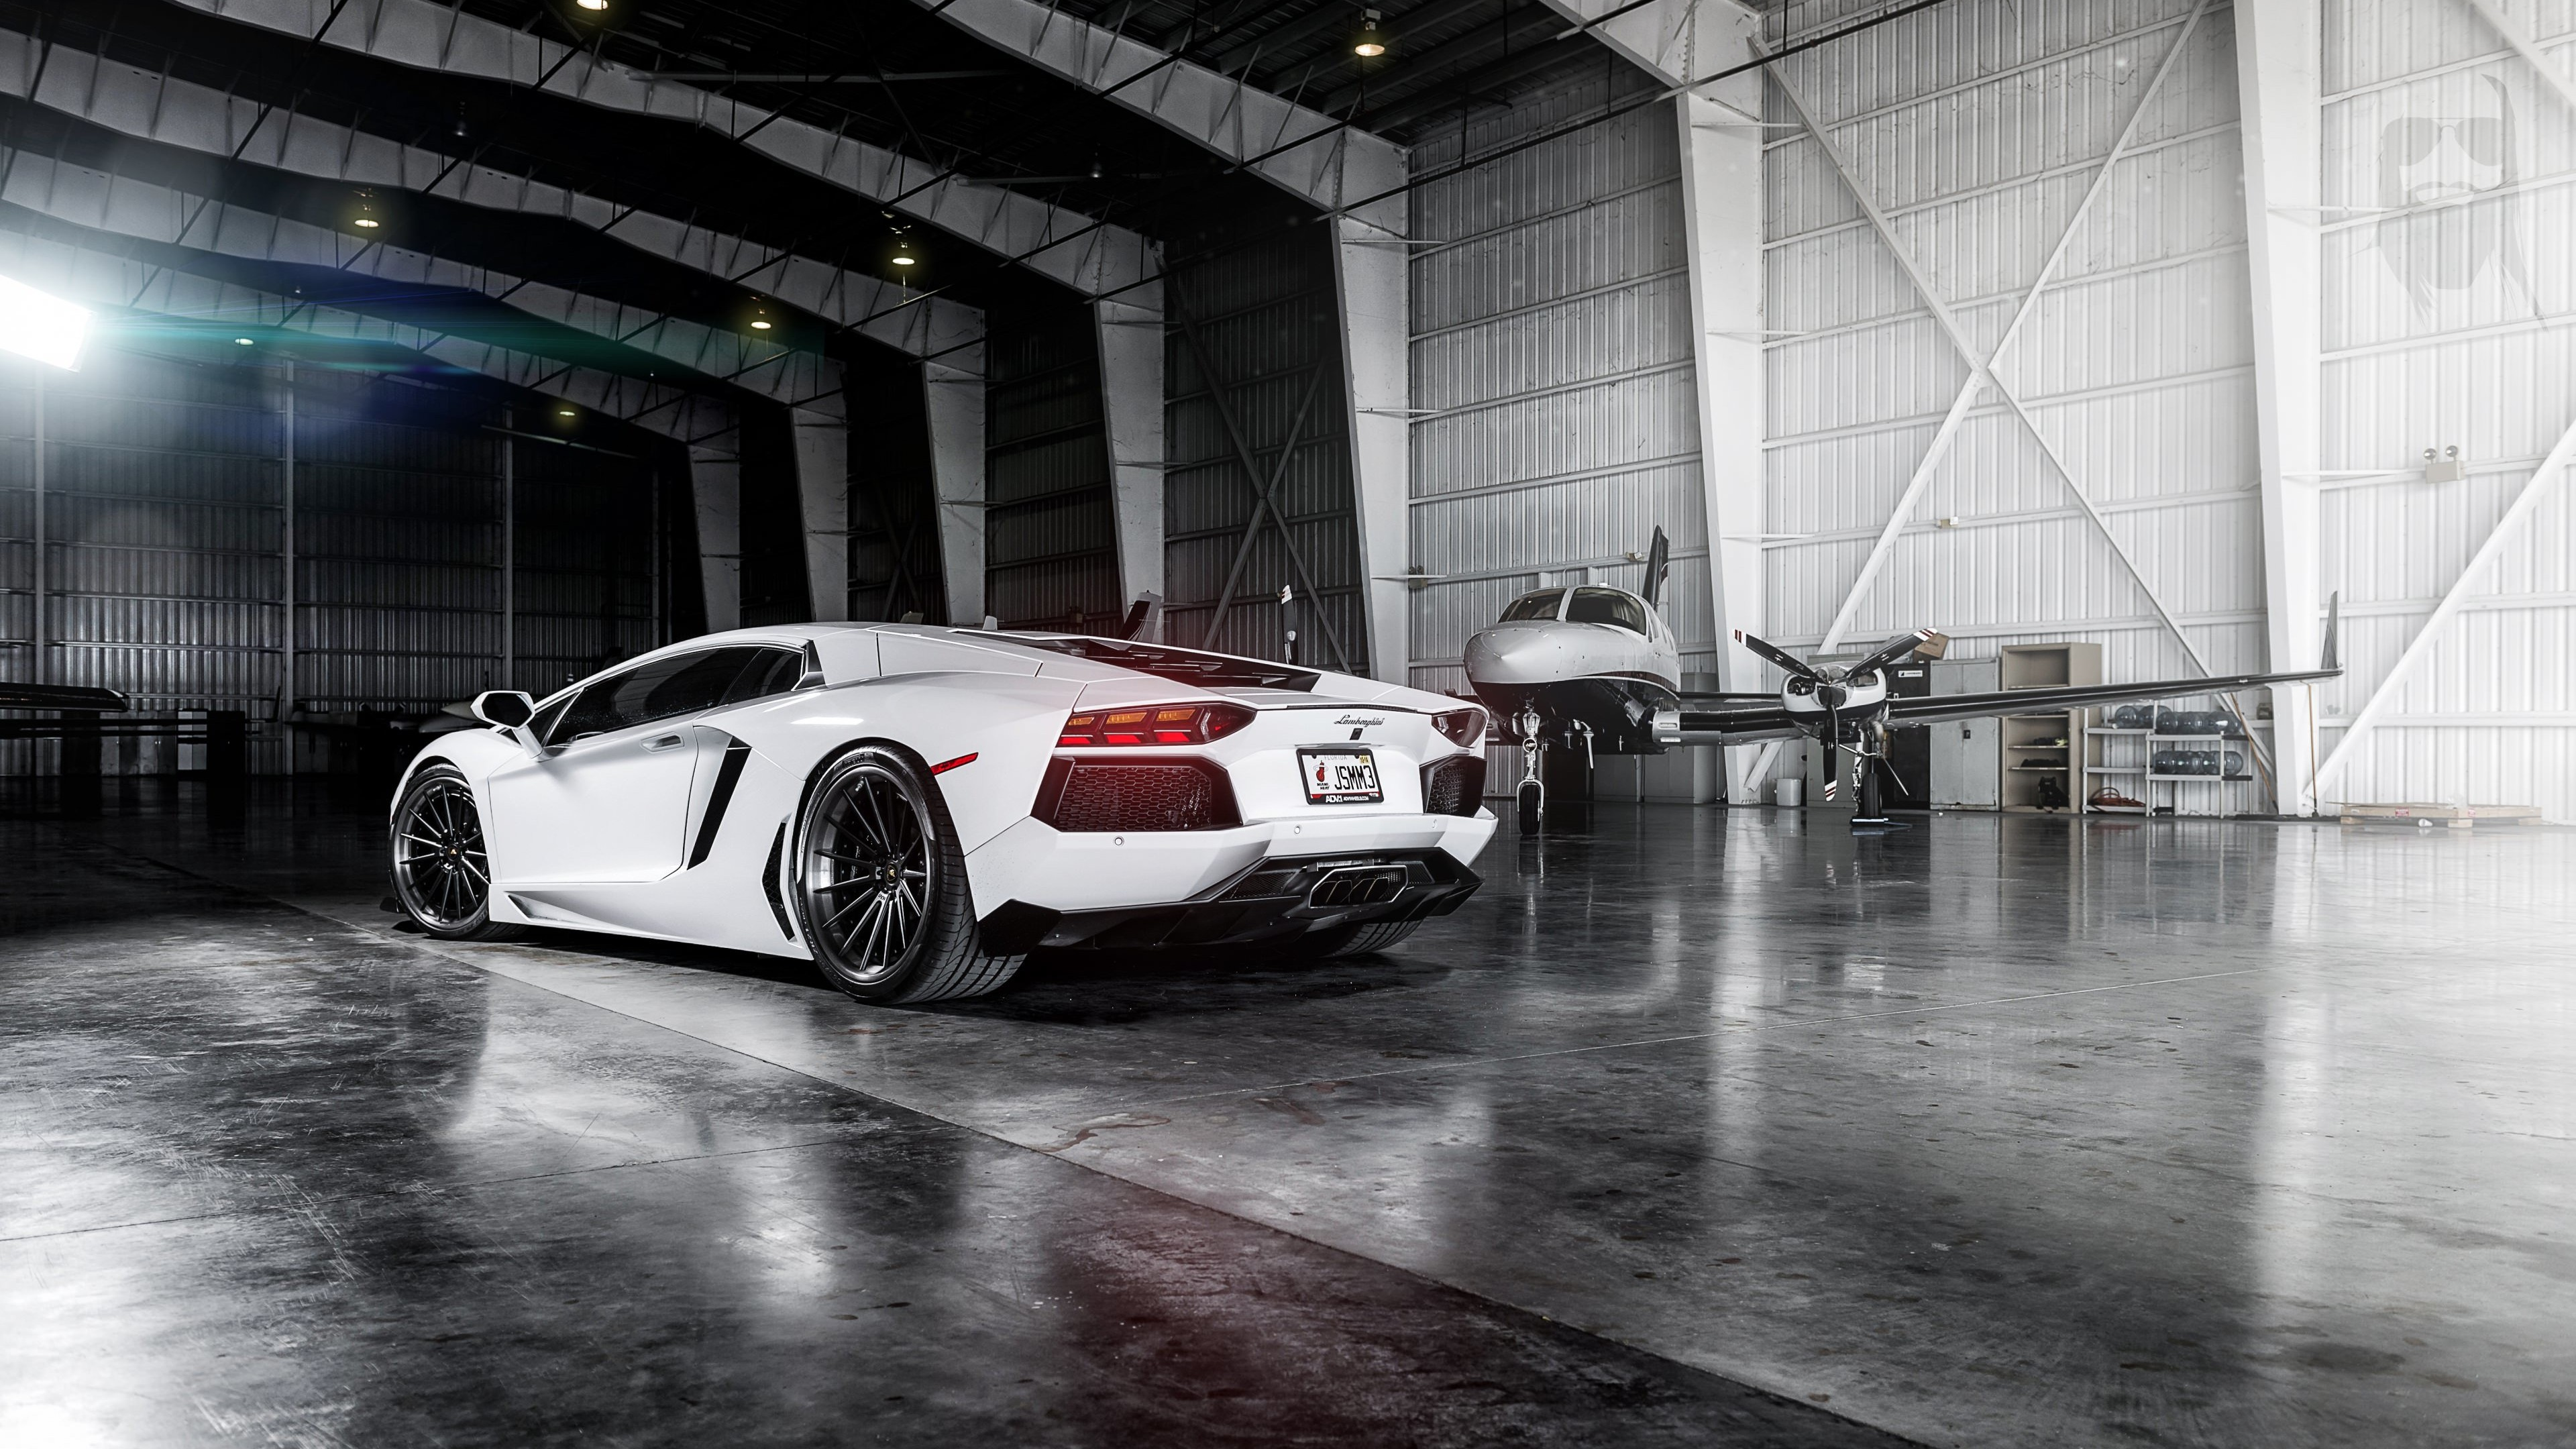 White Lamborghini Aventador Wallpaper for Desktop 4K 3840x2160